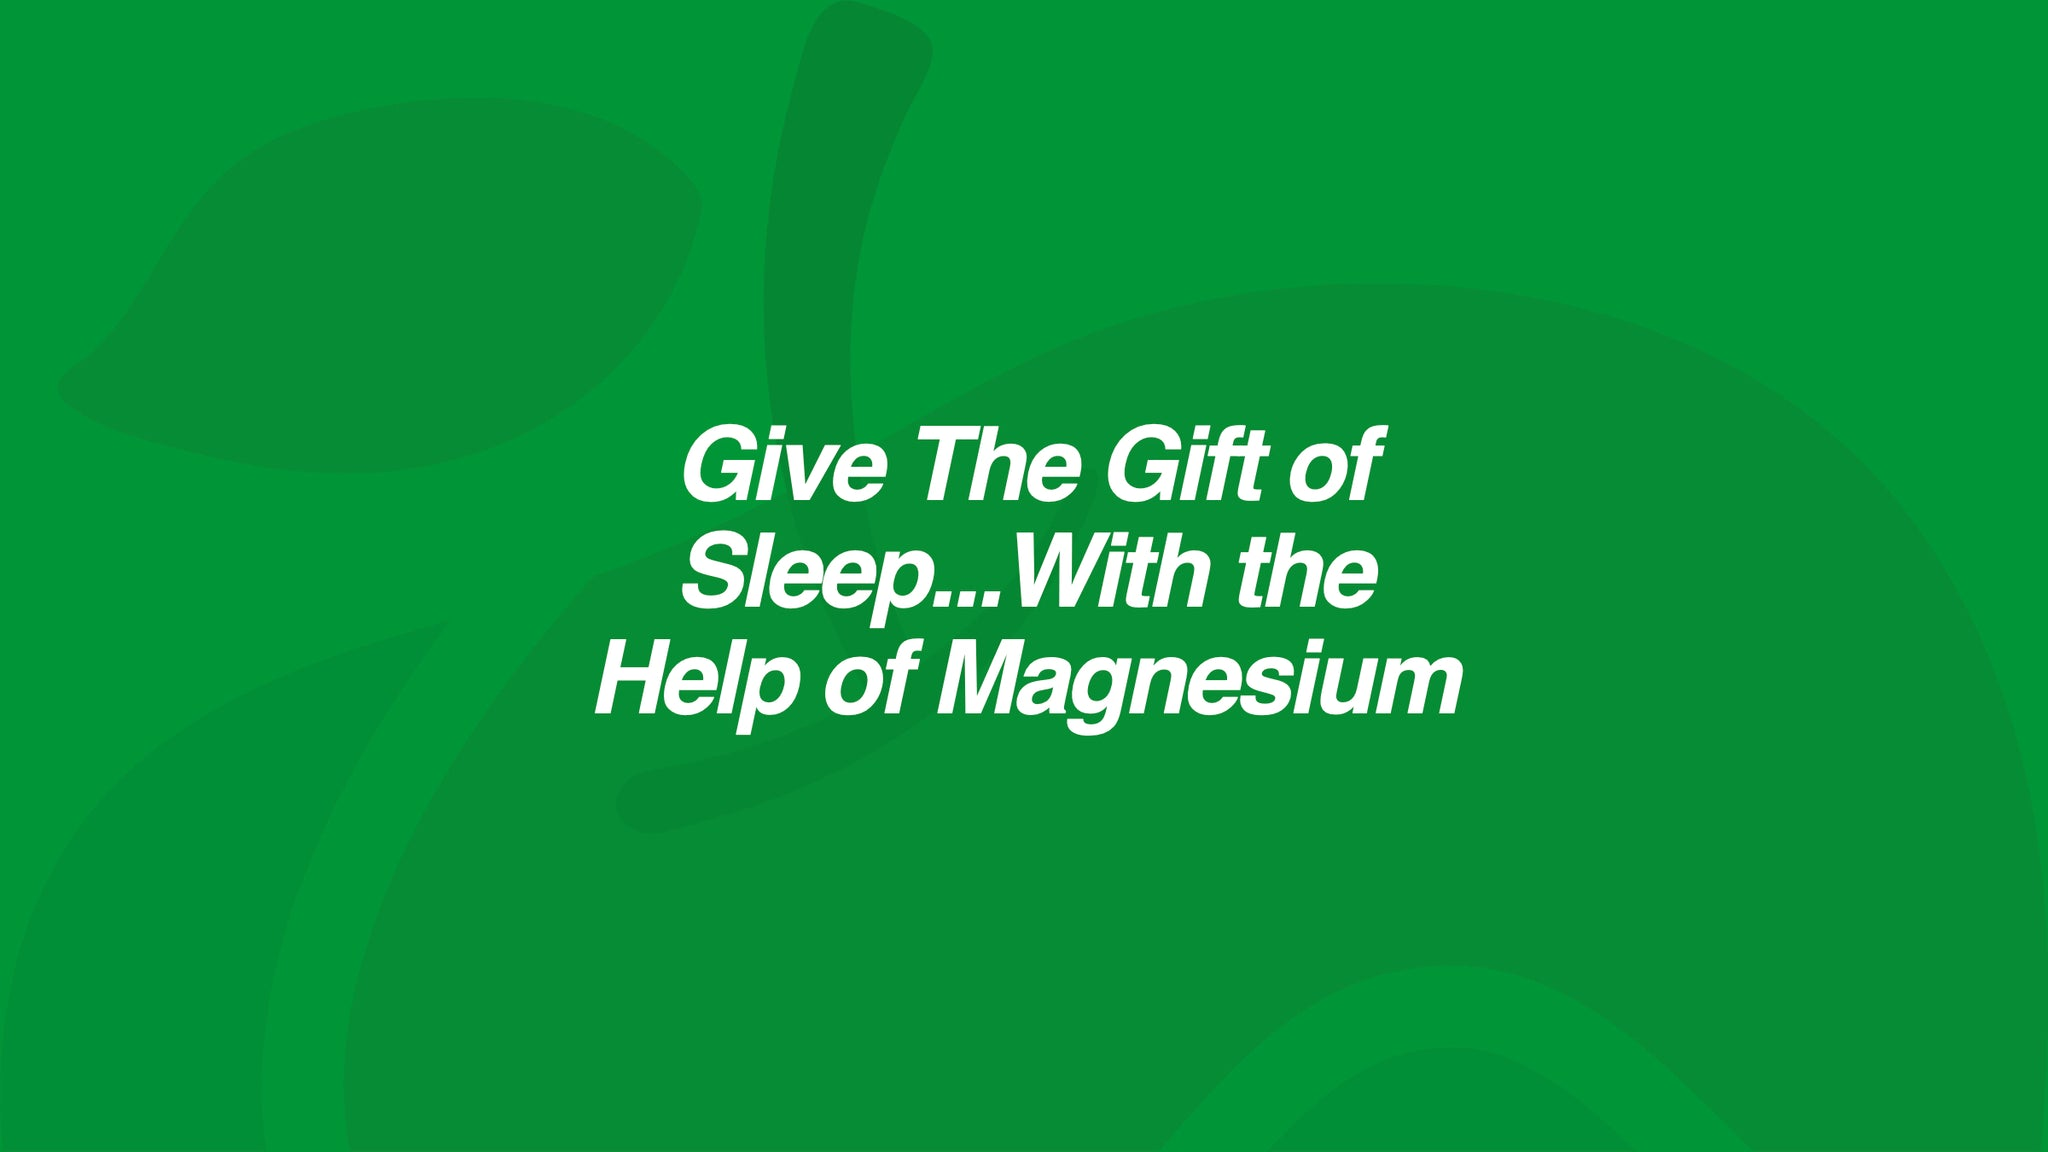 Give The Gift of Sleep...With the Help of Magnesium